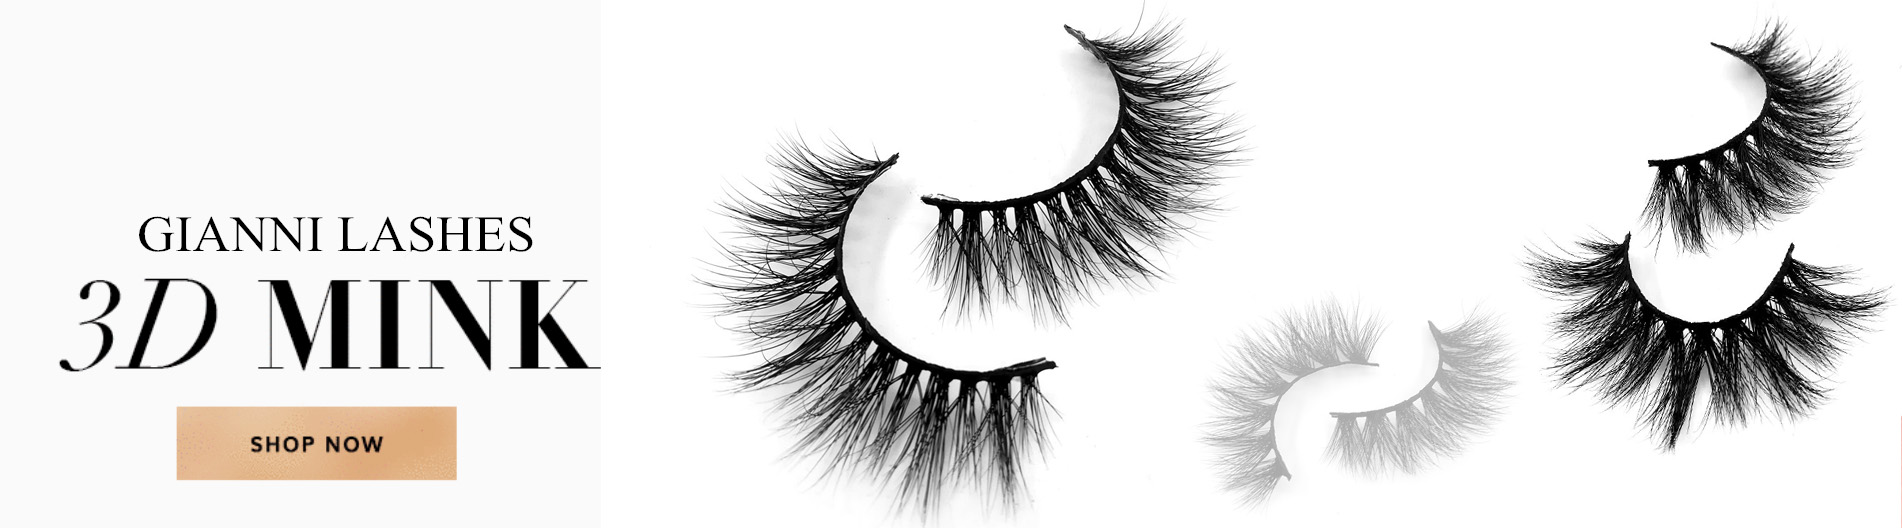 93f5d622685 Wholesale Mink Lashes Vendor 3D Mink Lashes Strip Manufacturer